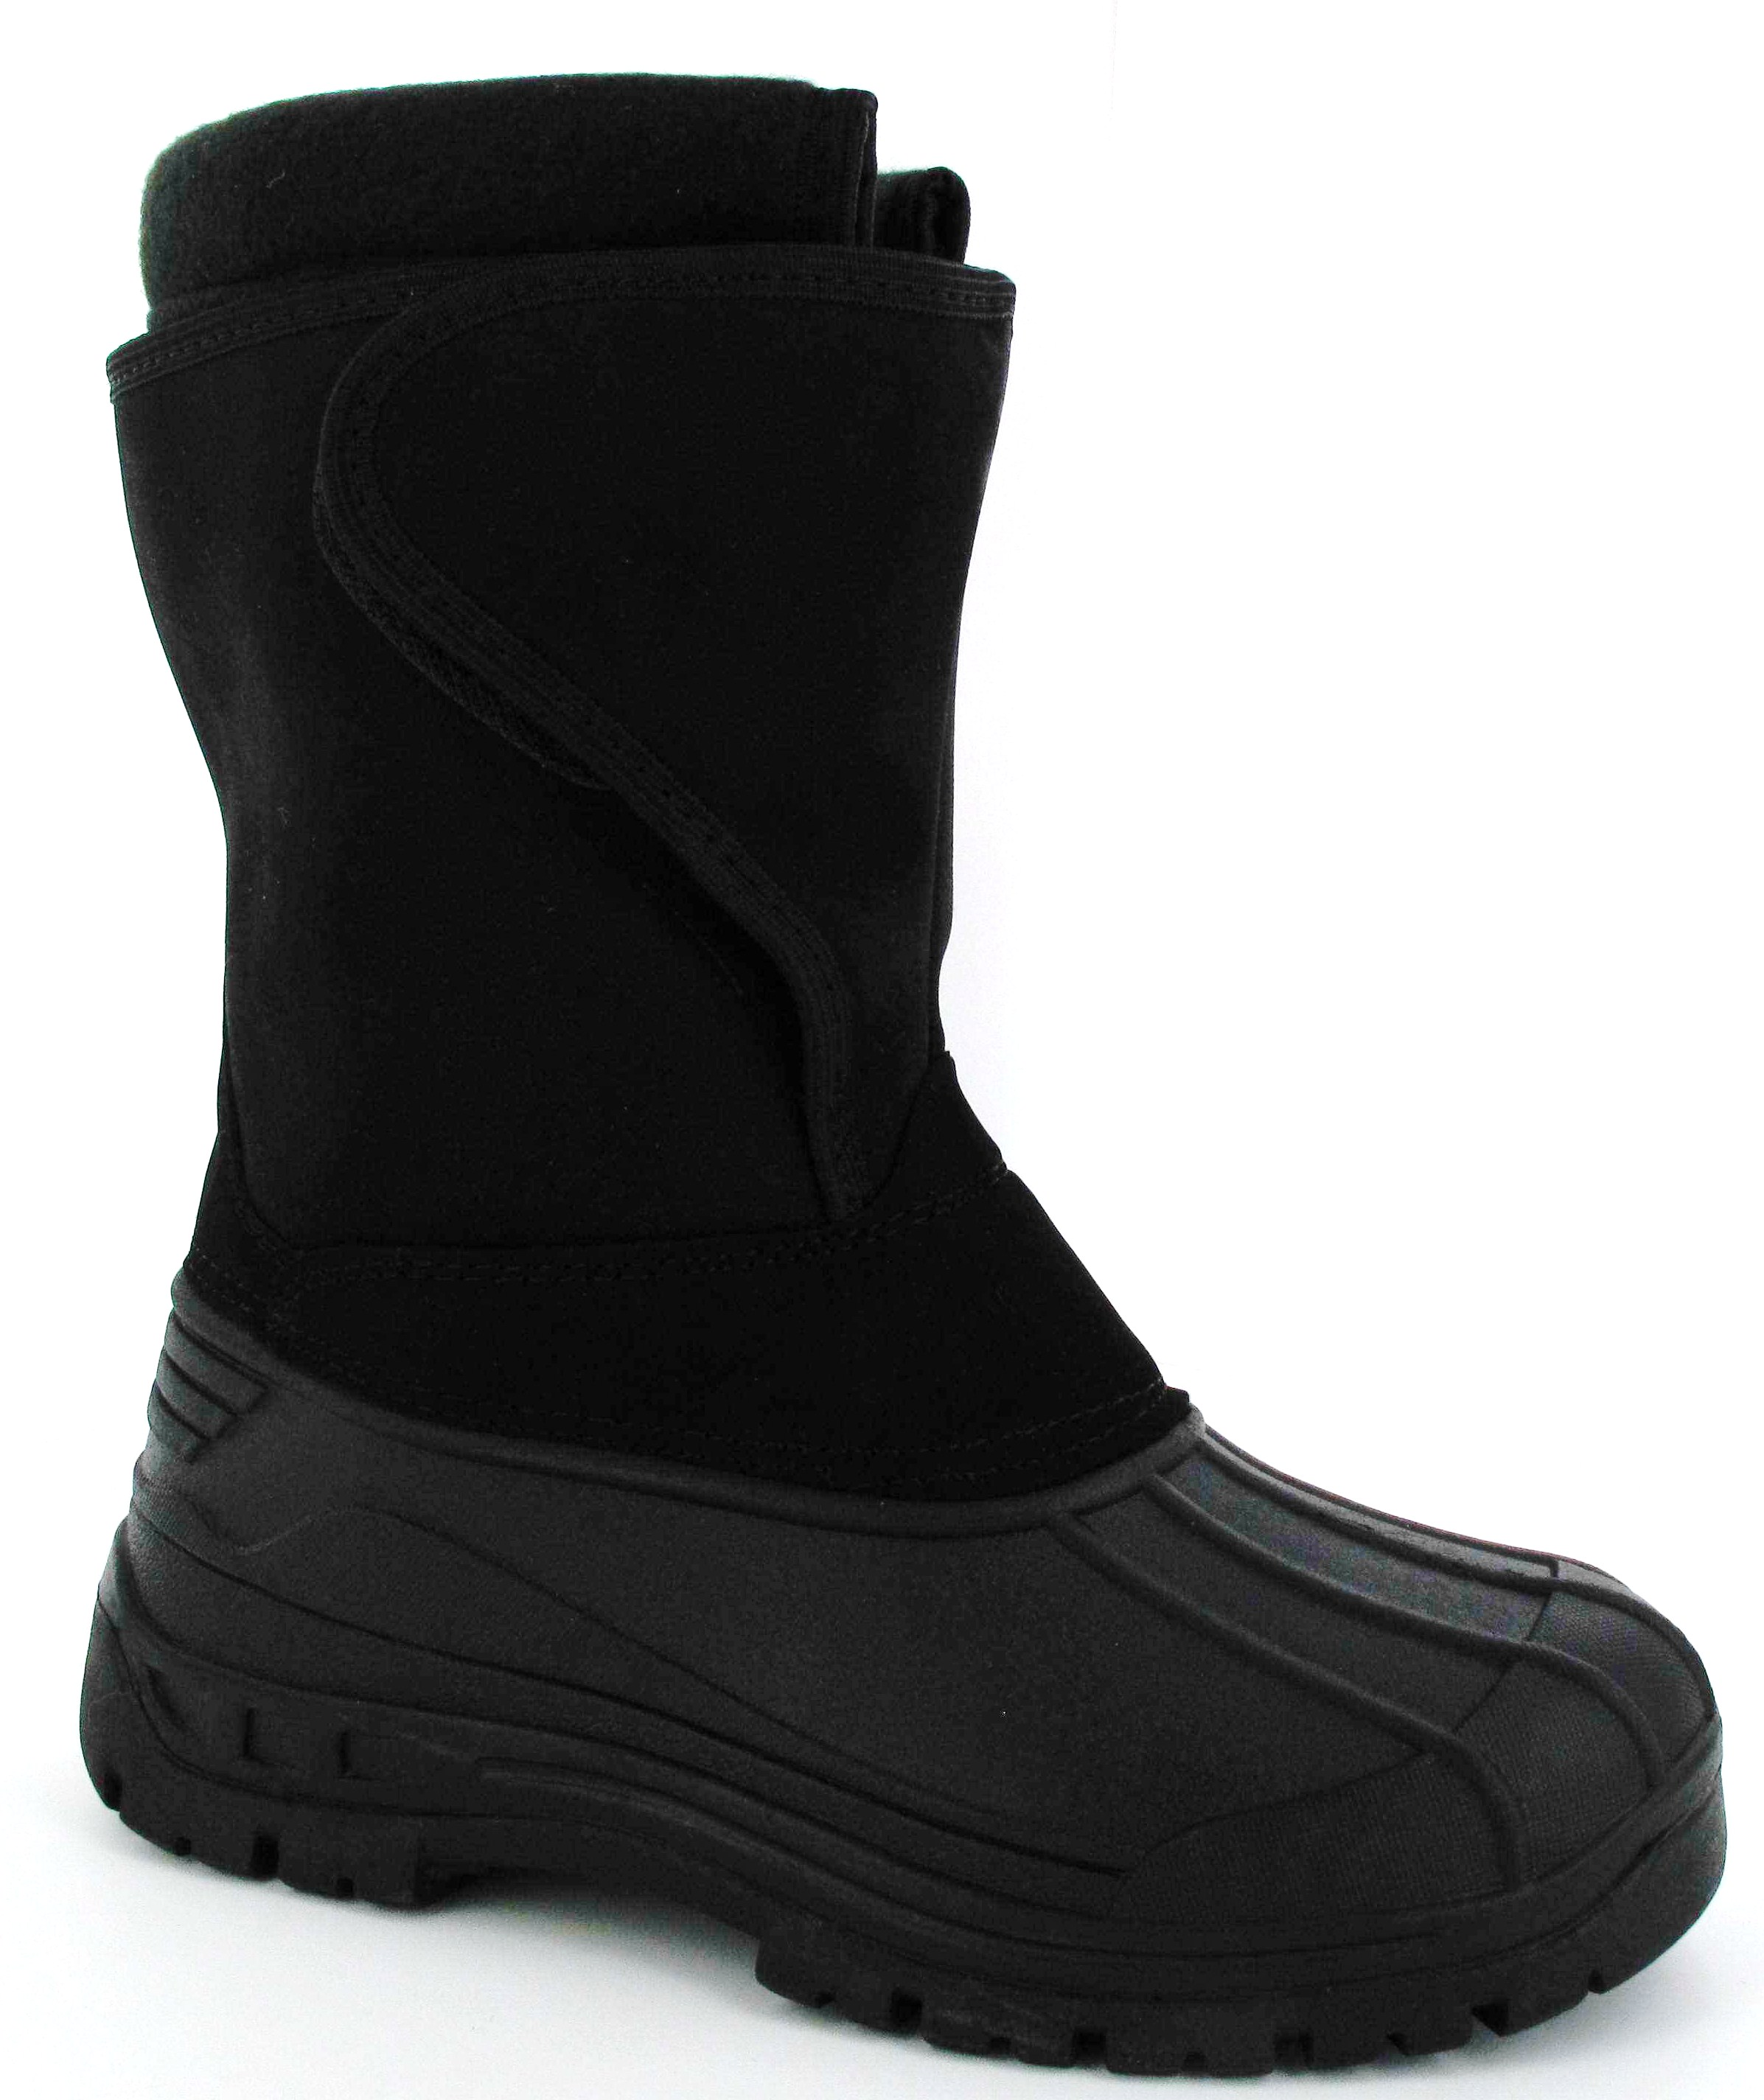 Popular Womens Keddo Warm Lined Wellington Boots Ladies Waterproof